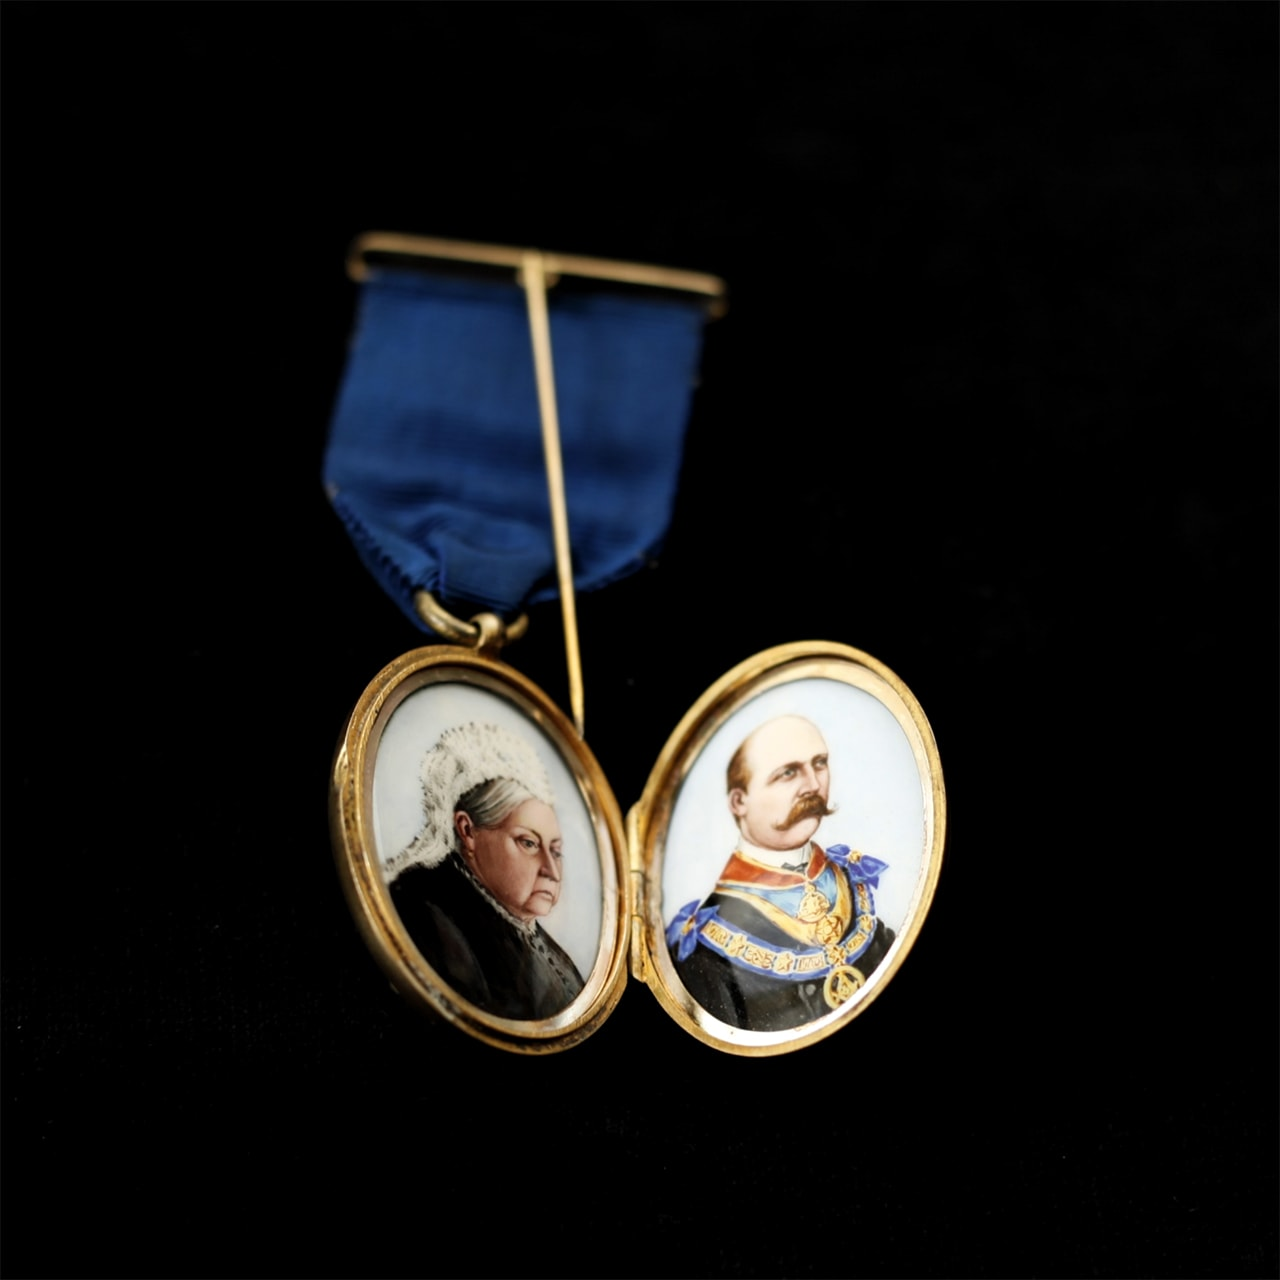 Bejewelled: Badges, Brotherhood and Identity | Museum of